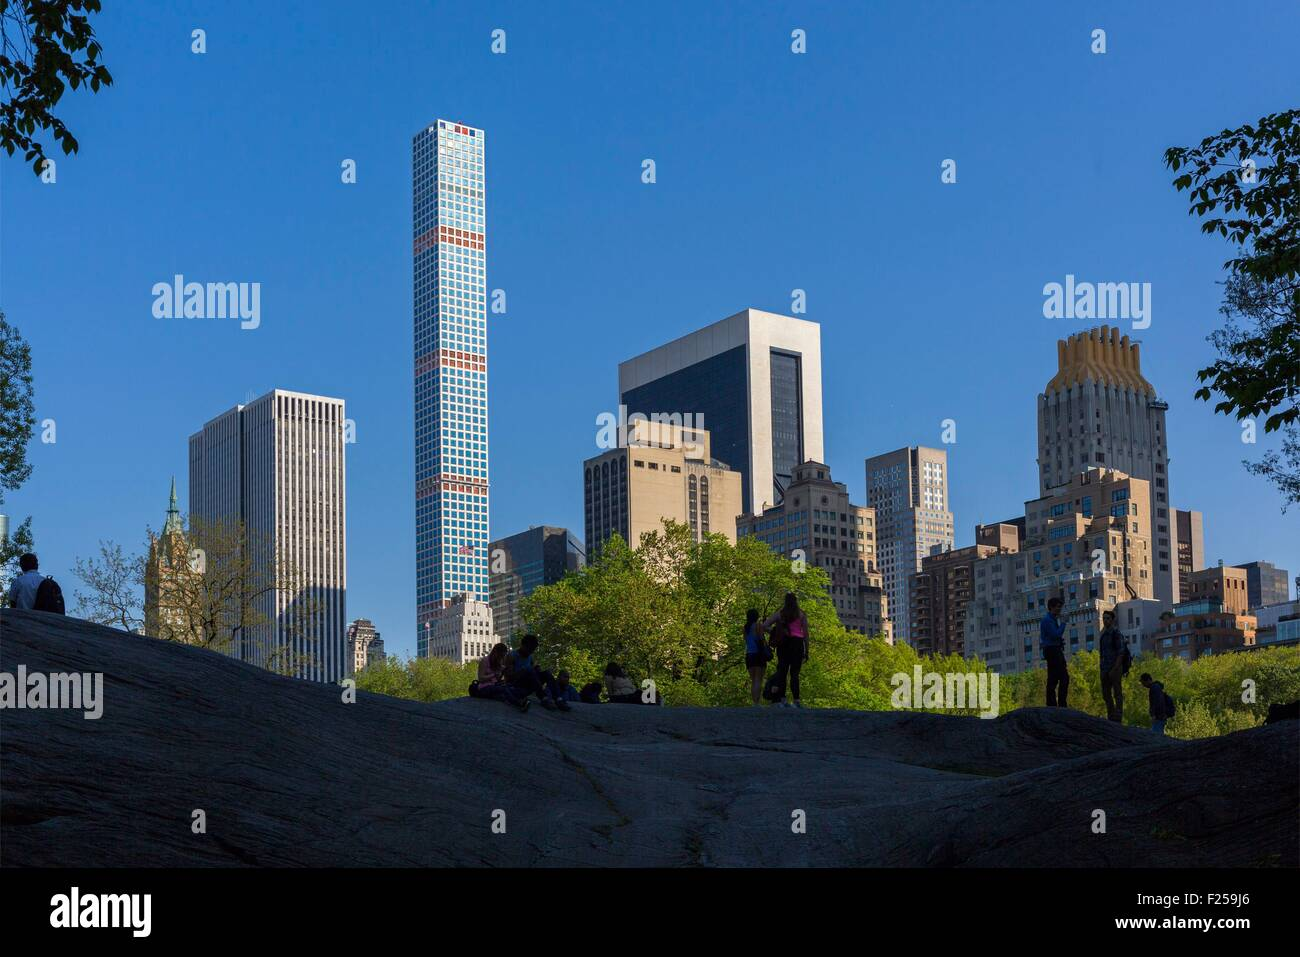 United States, New York, Central Park - Stock Image